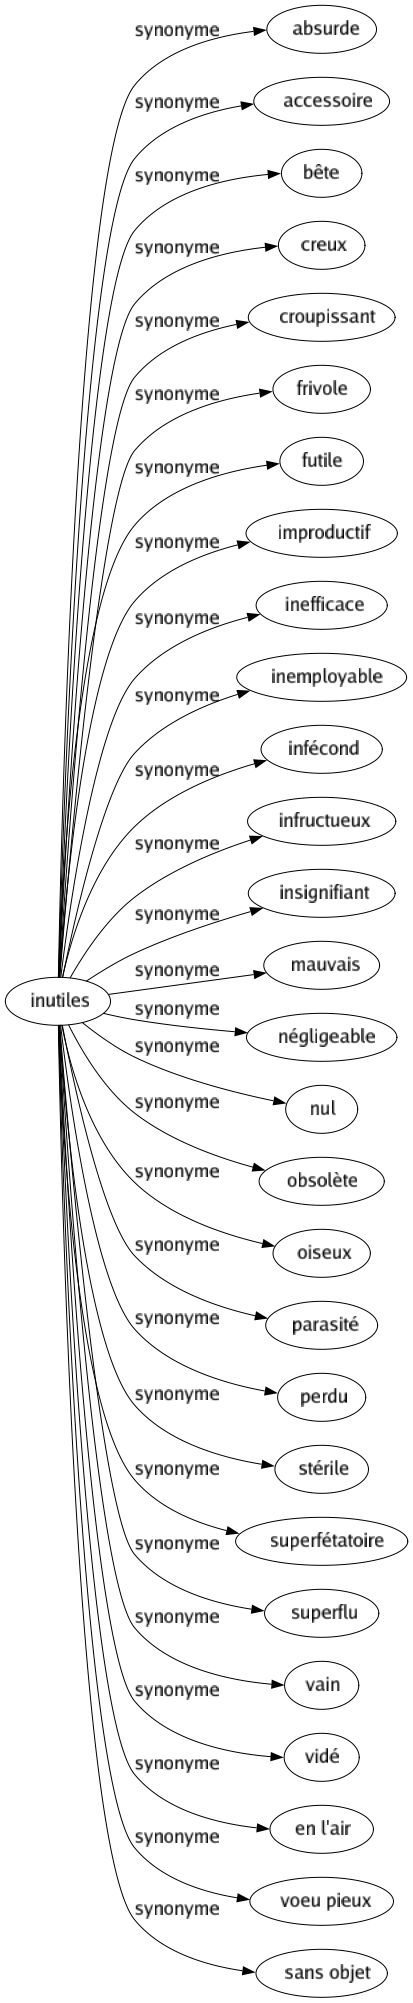 Inutile Synonyme